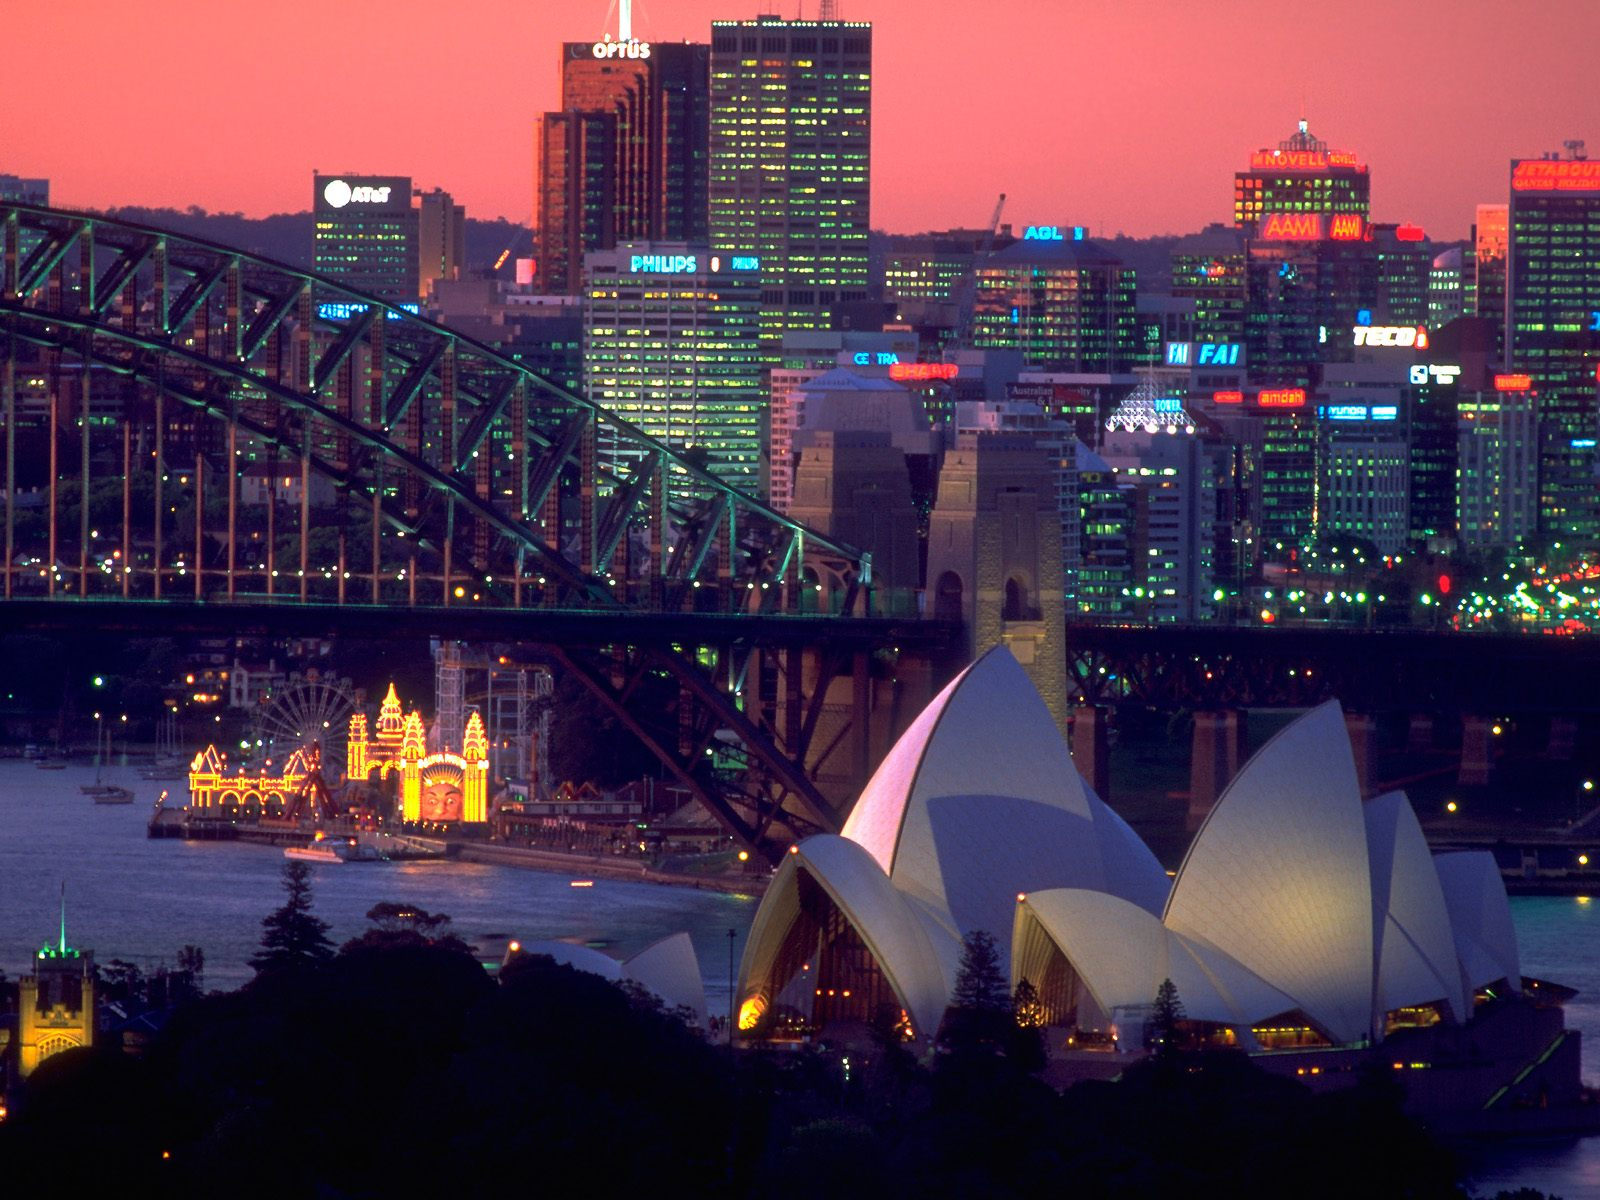 HD WALLPAPERS: SYDNEY WALLPAPERS